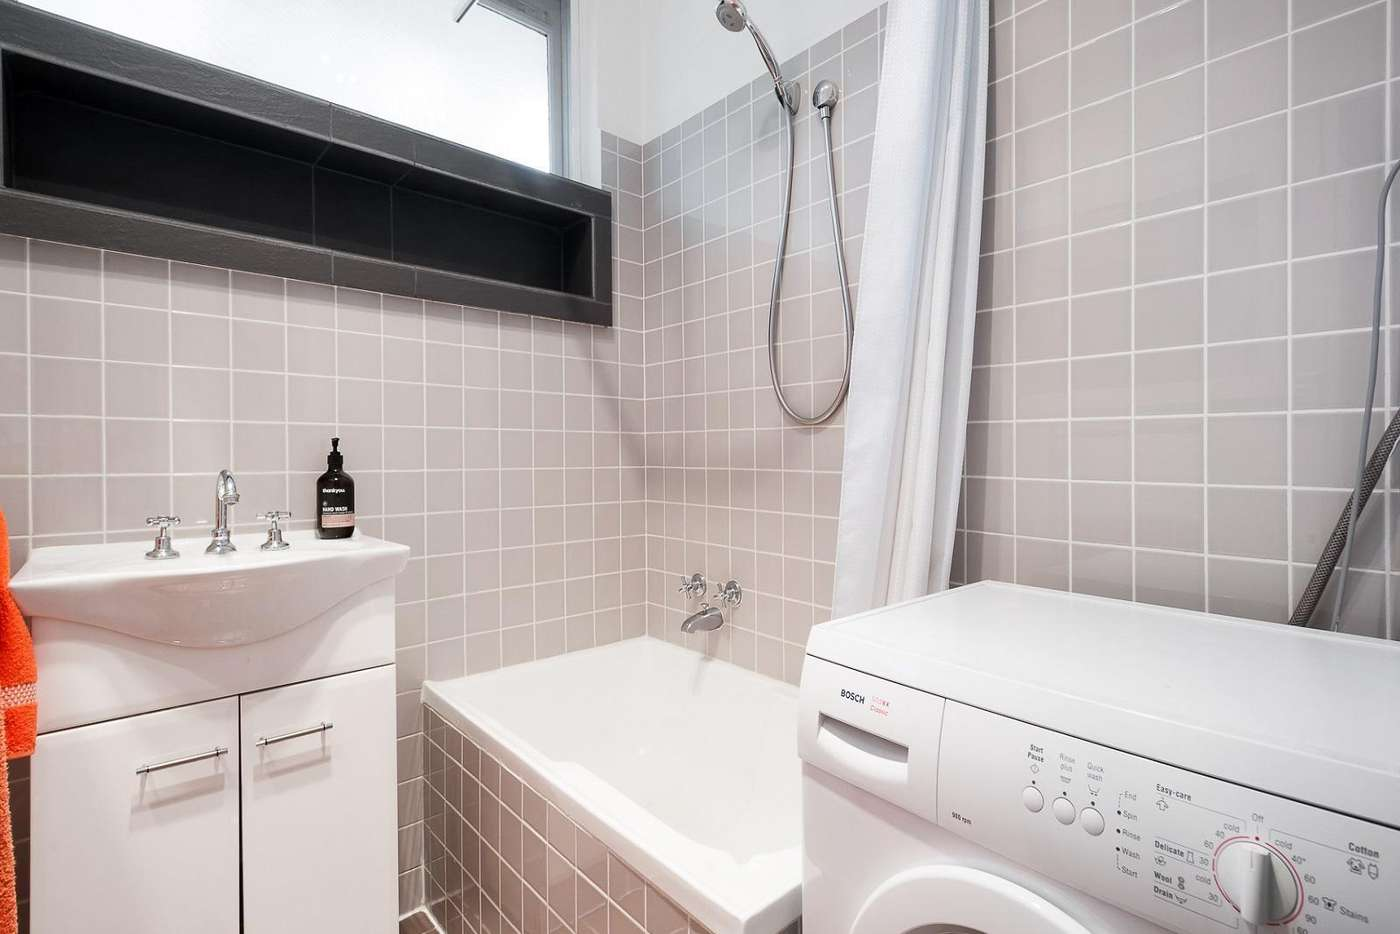 Sixth view of Homely apartment listing, 9/67 Pender Street, Thornbury VIC 3071